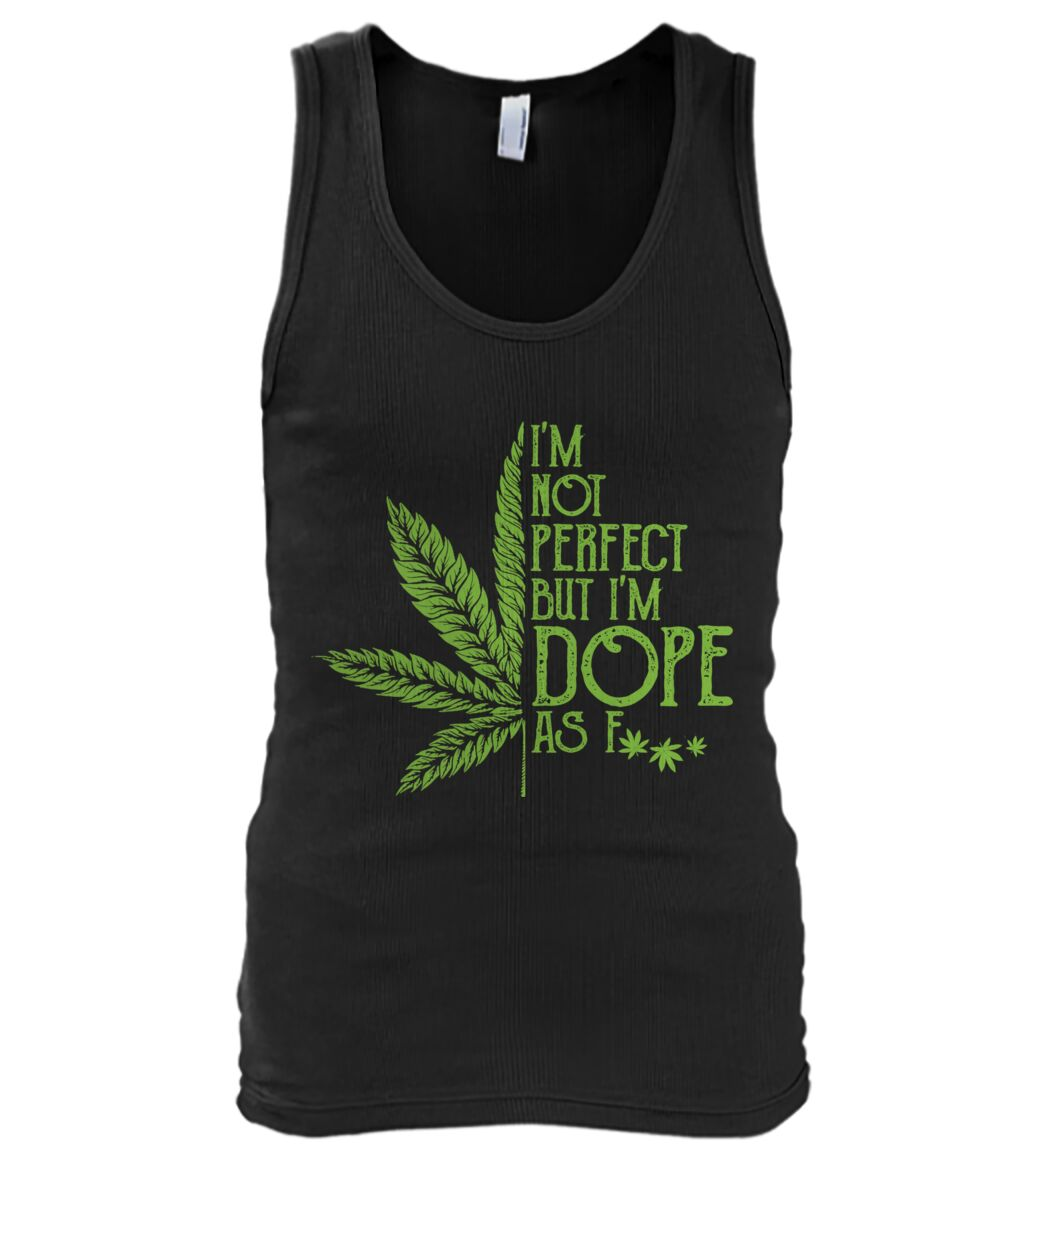 I'm Not Perfect But I'm Dope As Fuck Weed tank top